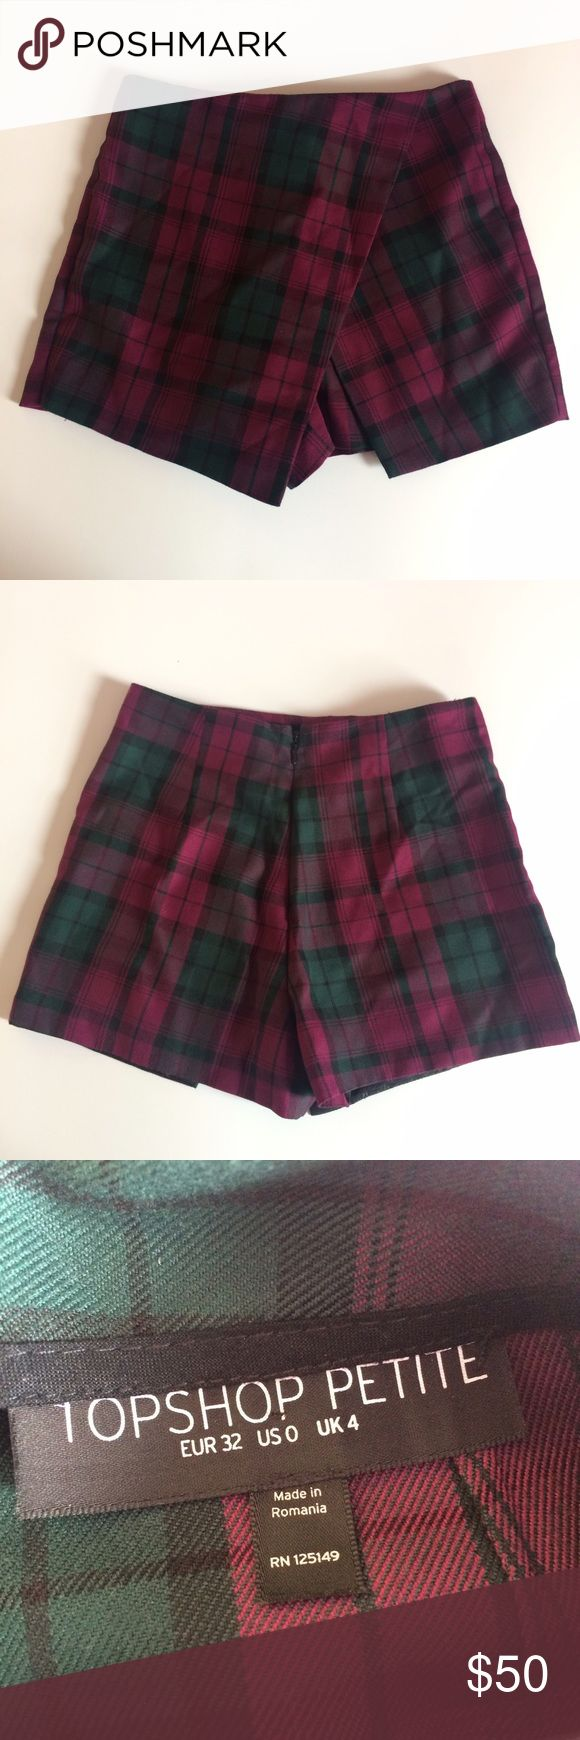 Topshop Petite Tartan Plaid Asymmetrical skort Topshop Petite size 0/XS asymmetrical tartan plaid skort. Bought at a Topshop store in the Philippines but only got to wear maybe twice. Orig. price was $58. Fits true to size. Like new condition, will iron before shipping. From a smoke-free, pet-free home. Feel free to ask questions or make an offer! 😊 Topshop Skirts Asymmetrical